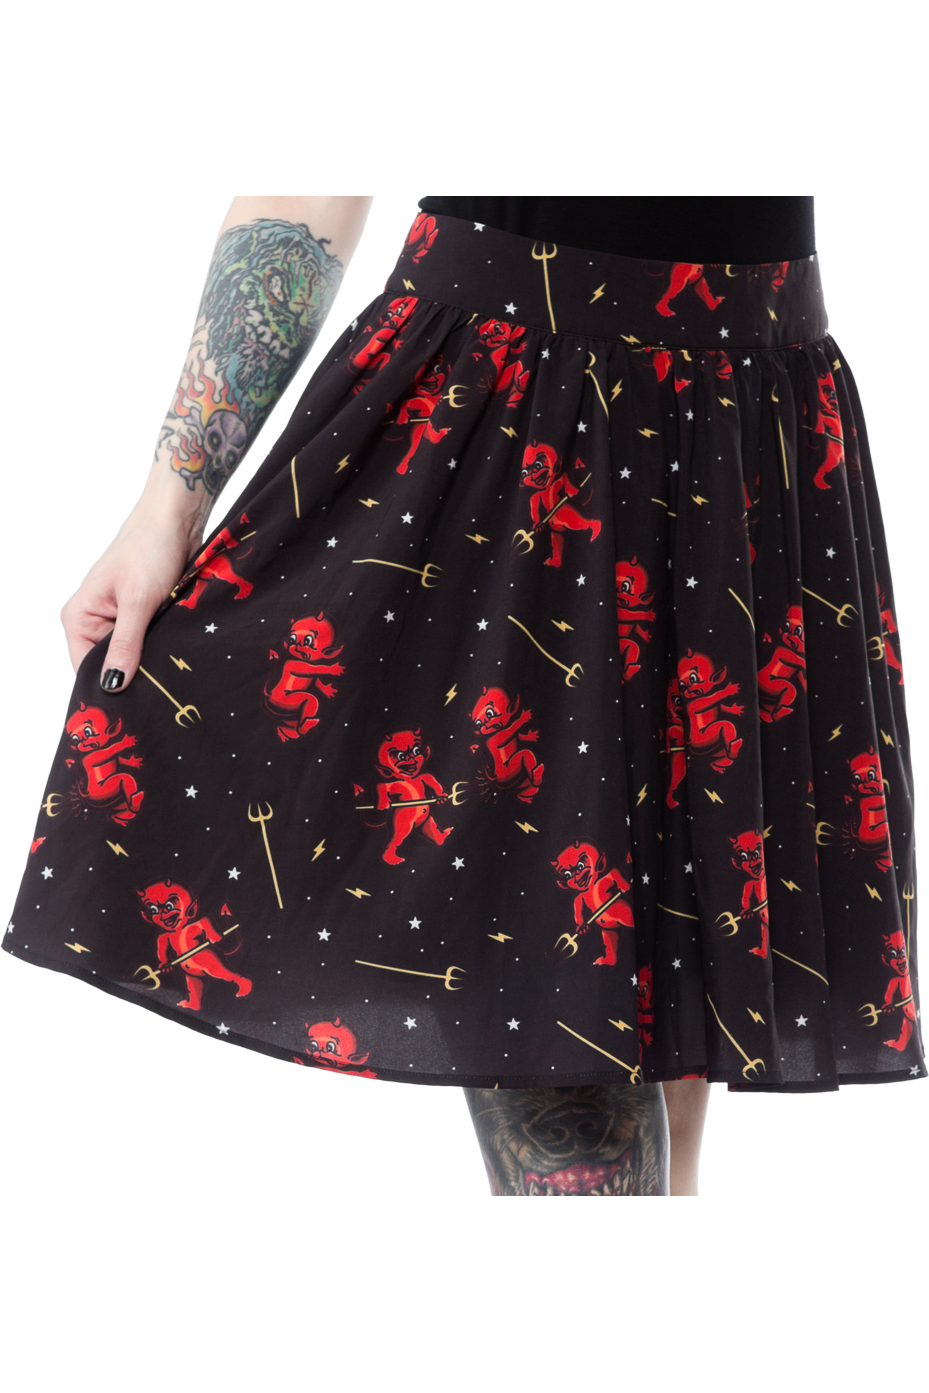 Hot Stuff Skirt